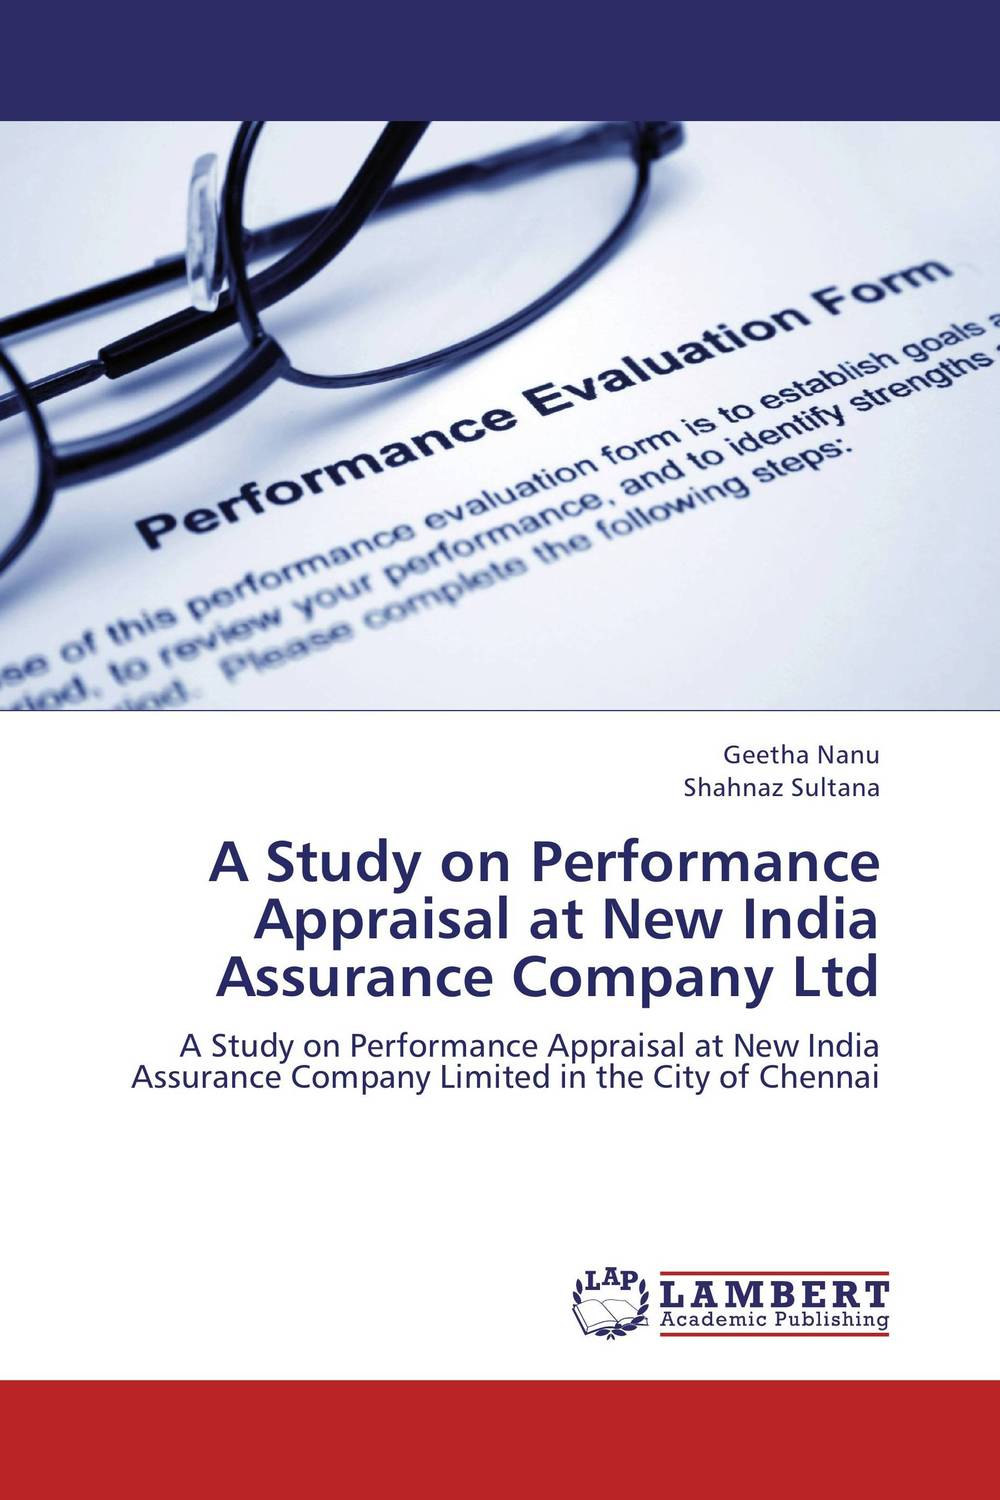 A Study on Performance Appraisal at New India Assurance Company Ltd an appraisal of the role of amnesty as a tool for reconciliation